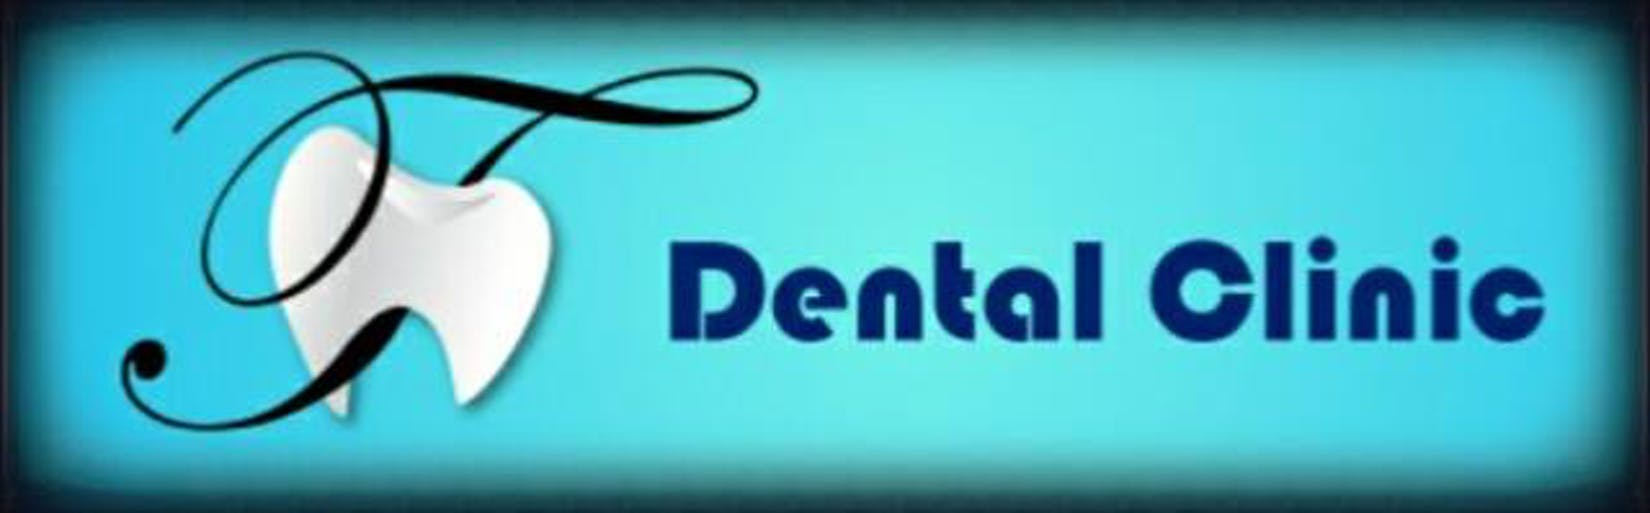 Tn Dental Clinic | Medical